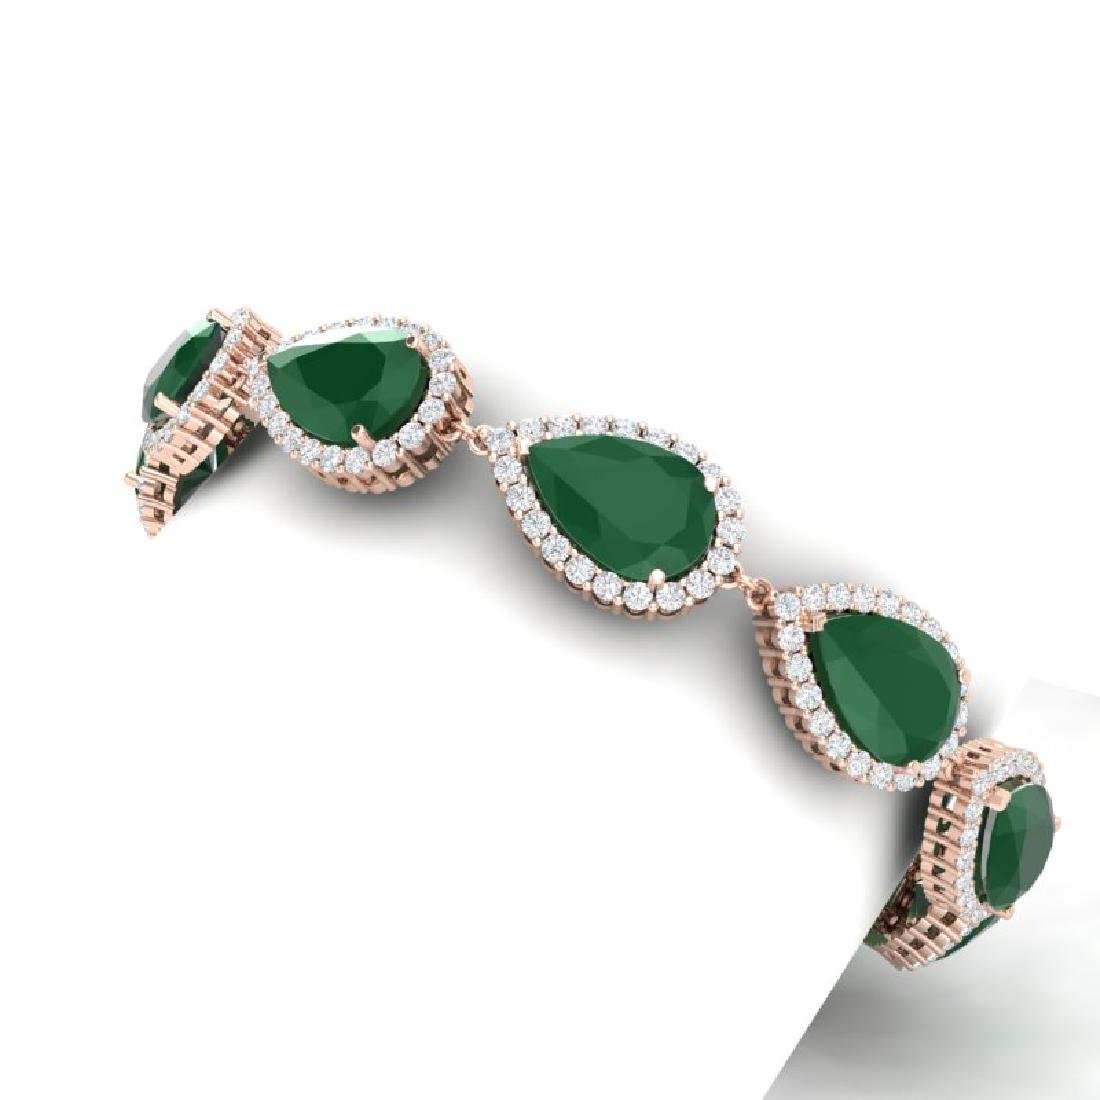 42 CTW Royalty Emerald & VS Diamond Bracelet 18K Rose